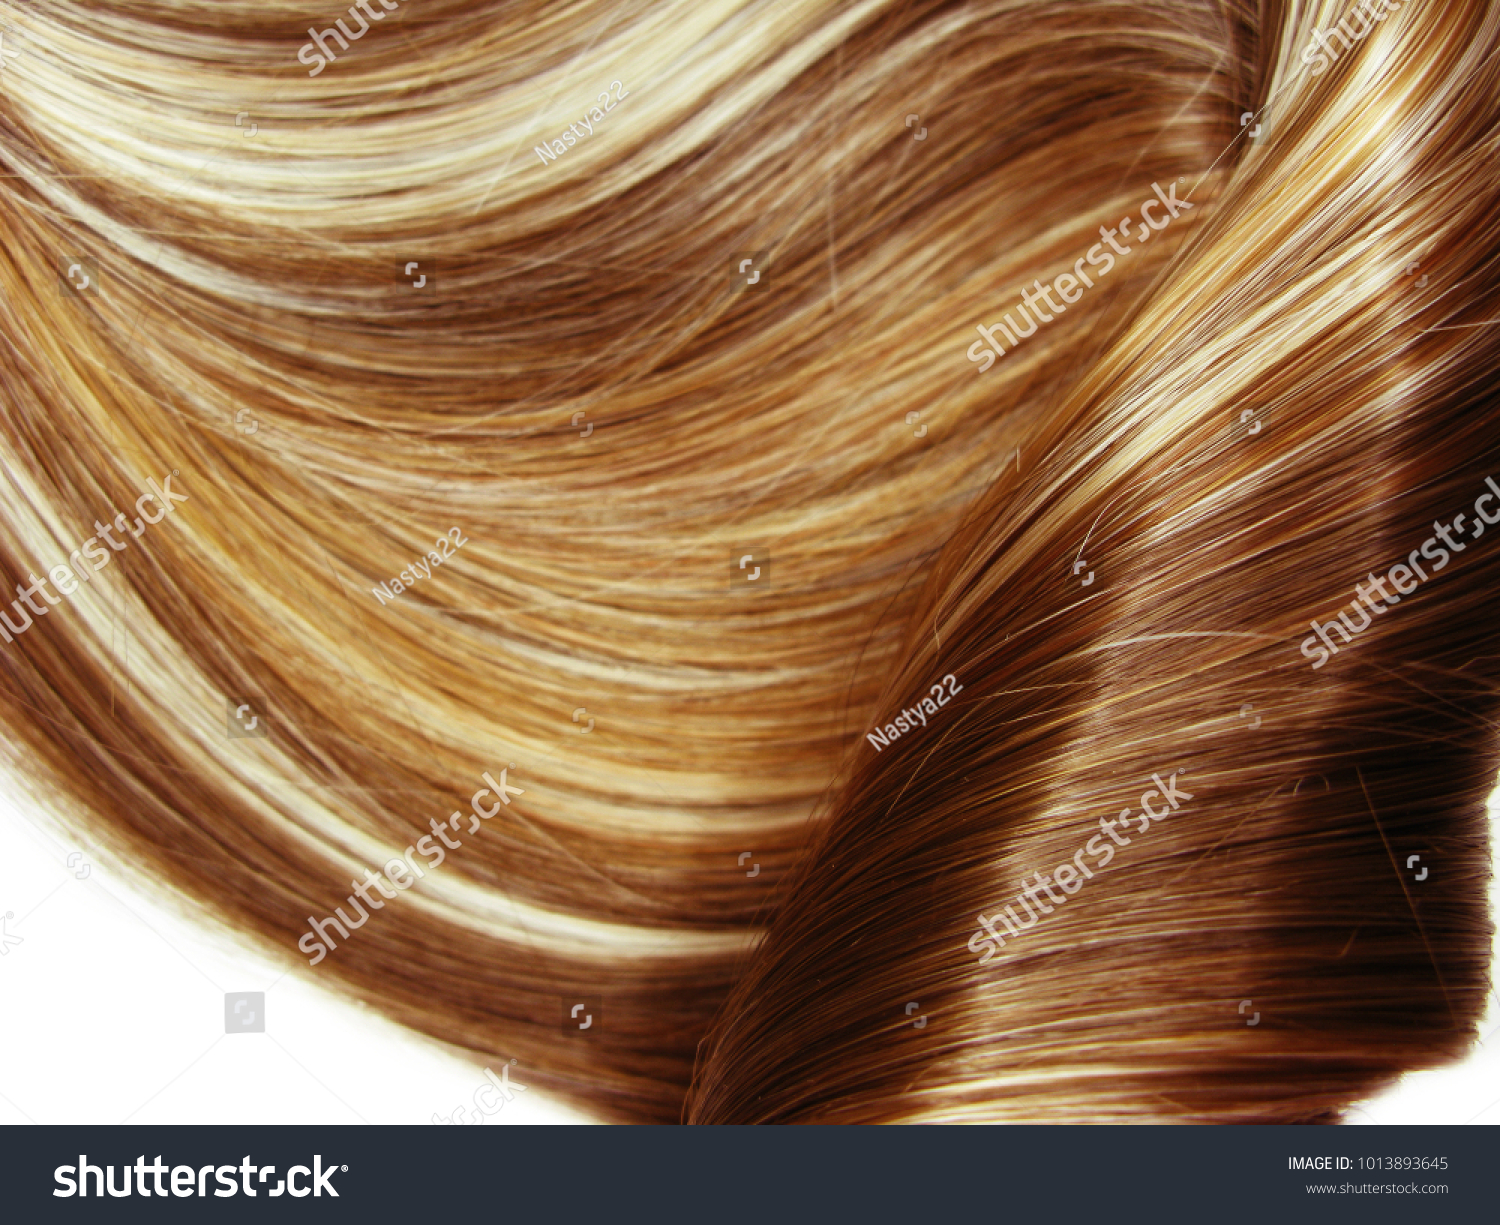 Highlight Hair Texture Abstract Fashion Style Stock Photo Safe To